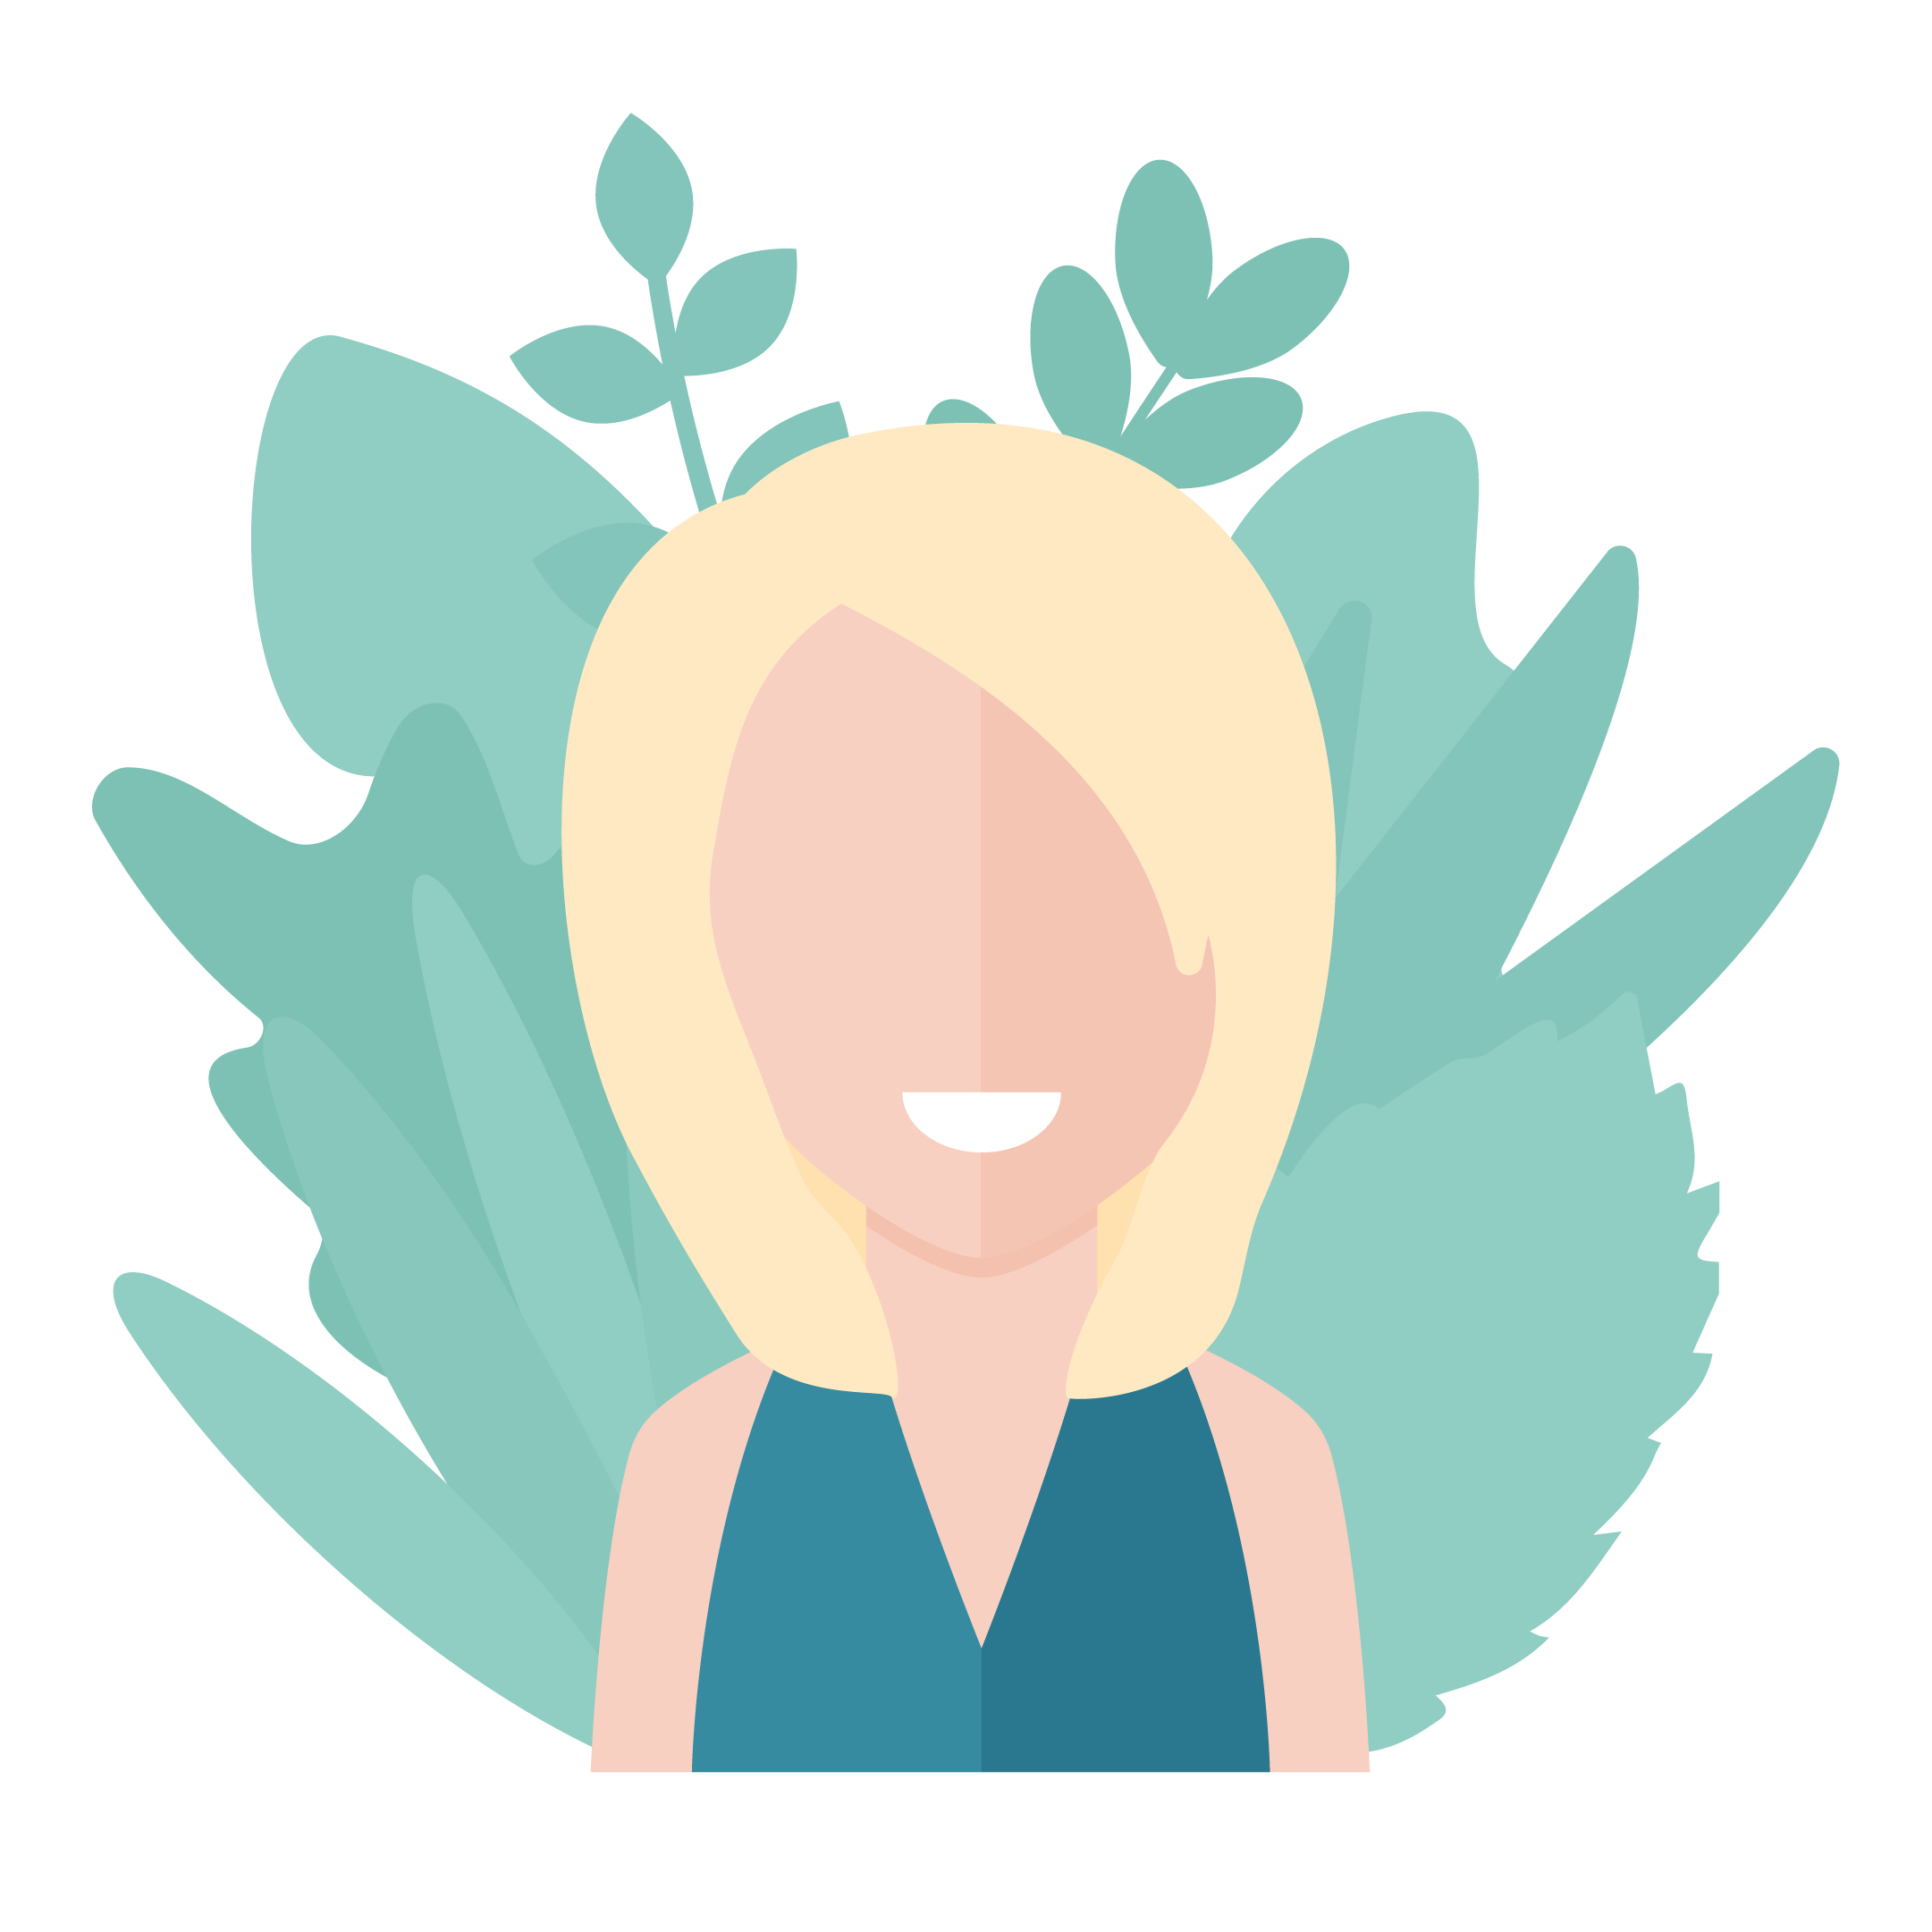 Modern avatar style vector illustration of a woman with short blond hair and teal top with mint plants around her in flat design style